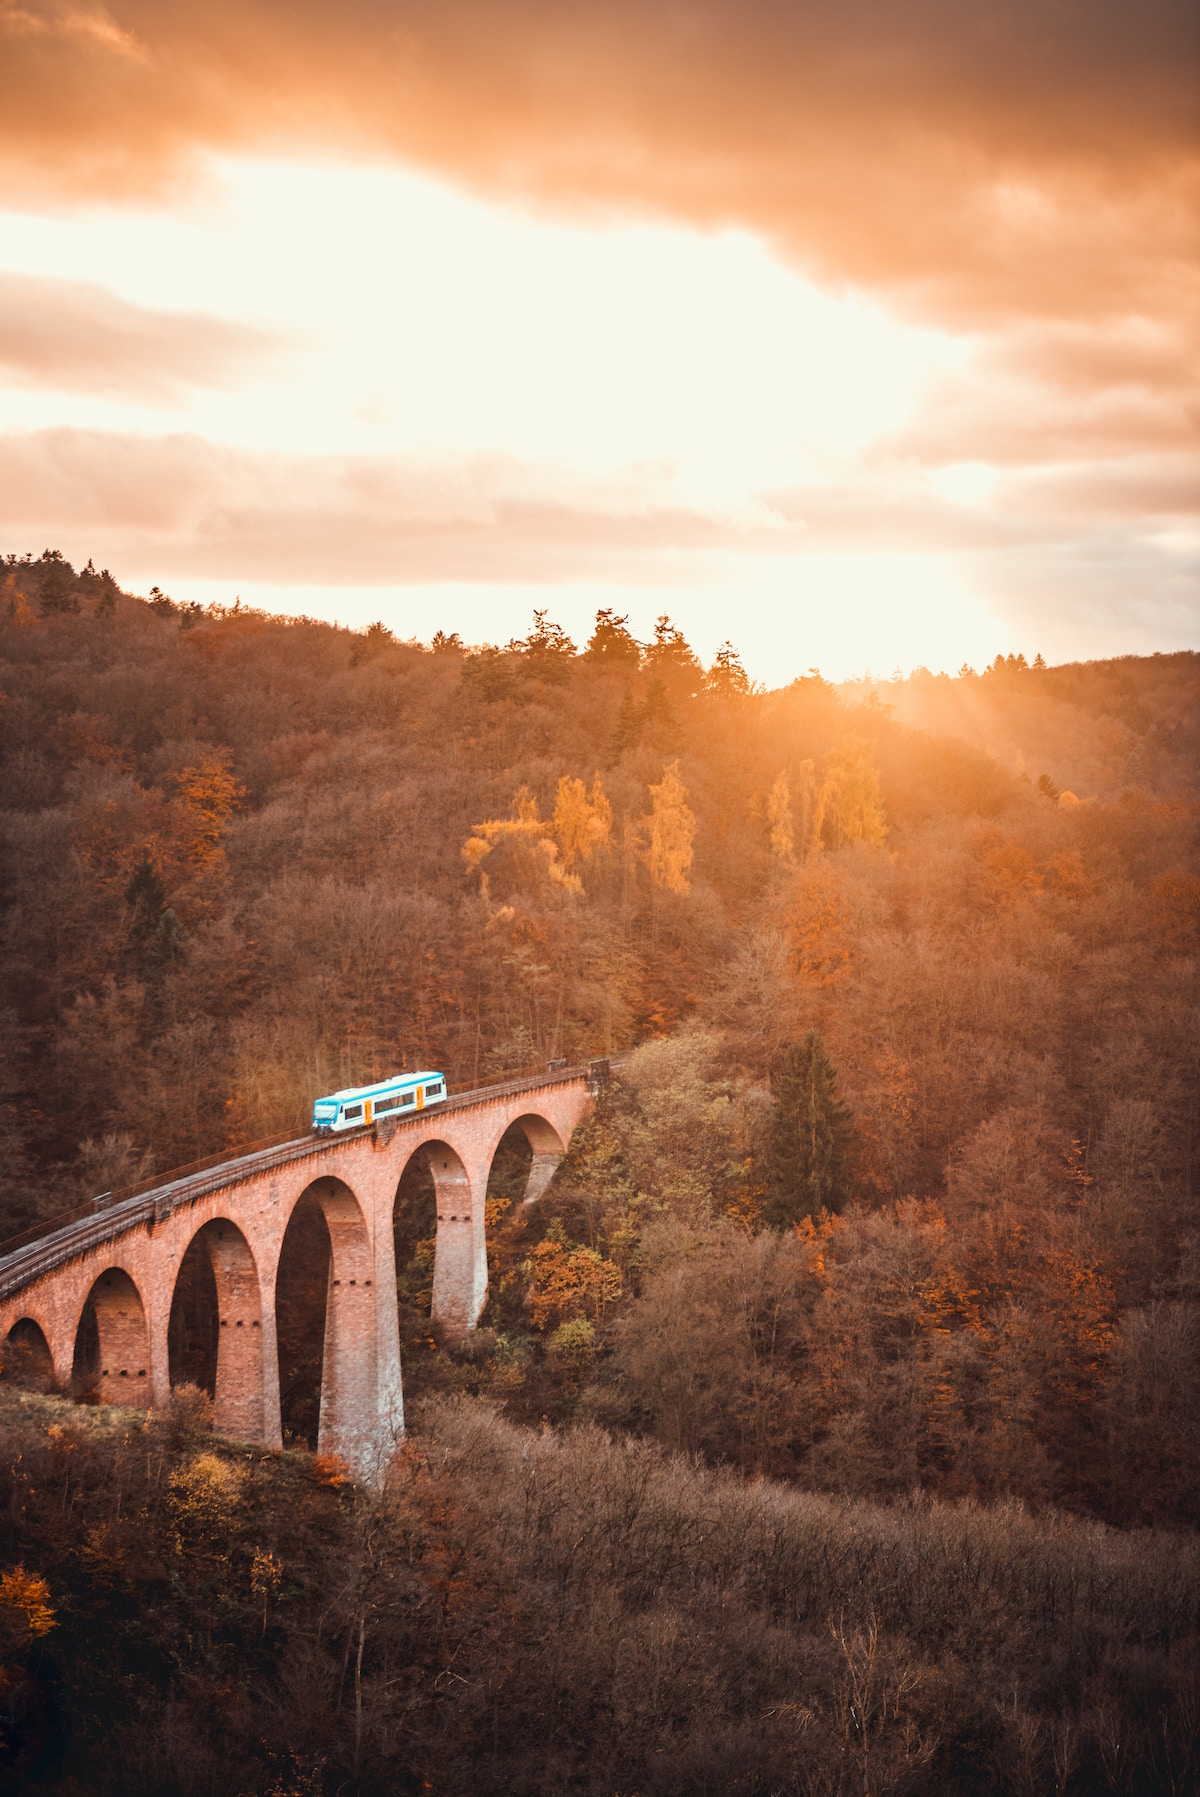 A brick bridge through a forest, with a train on it, at sunset